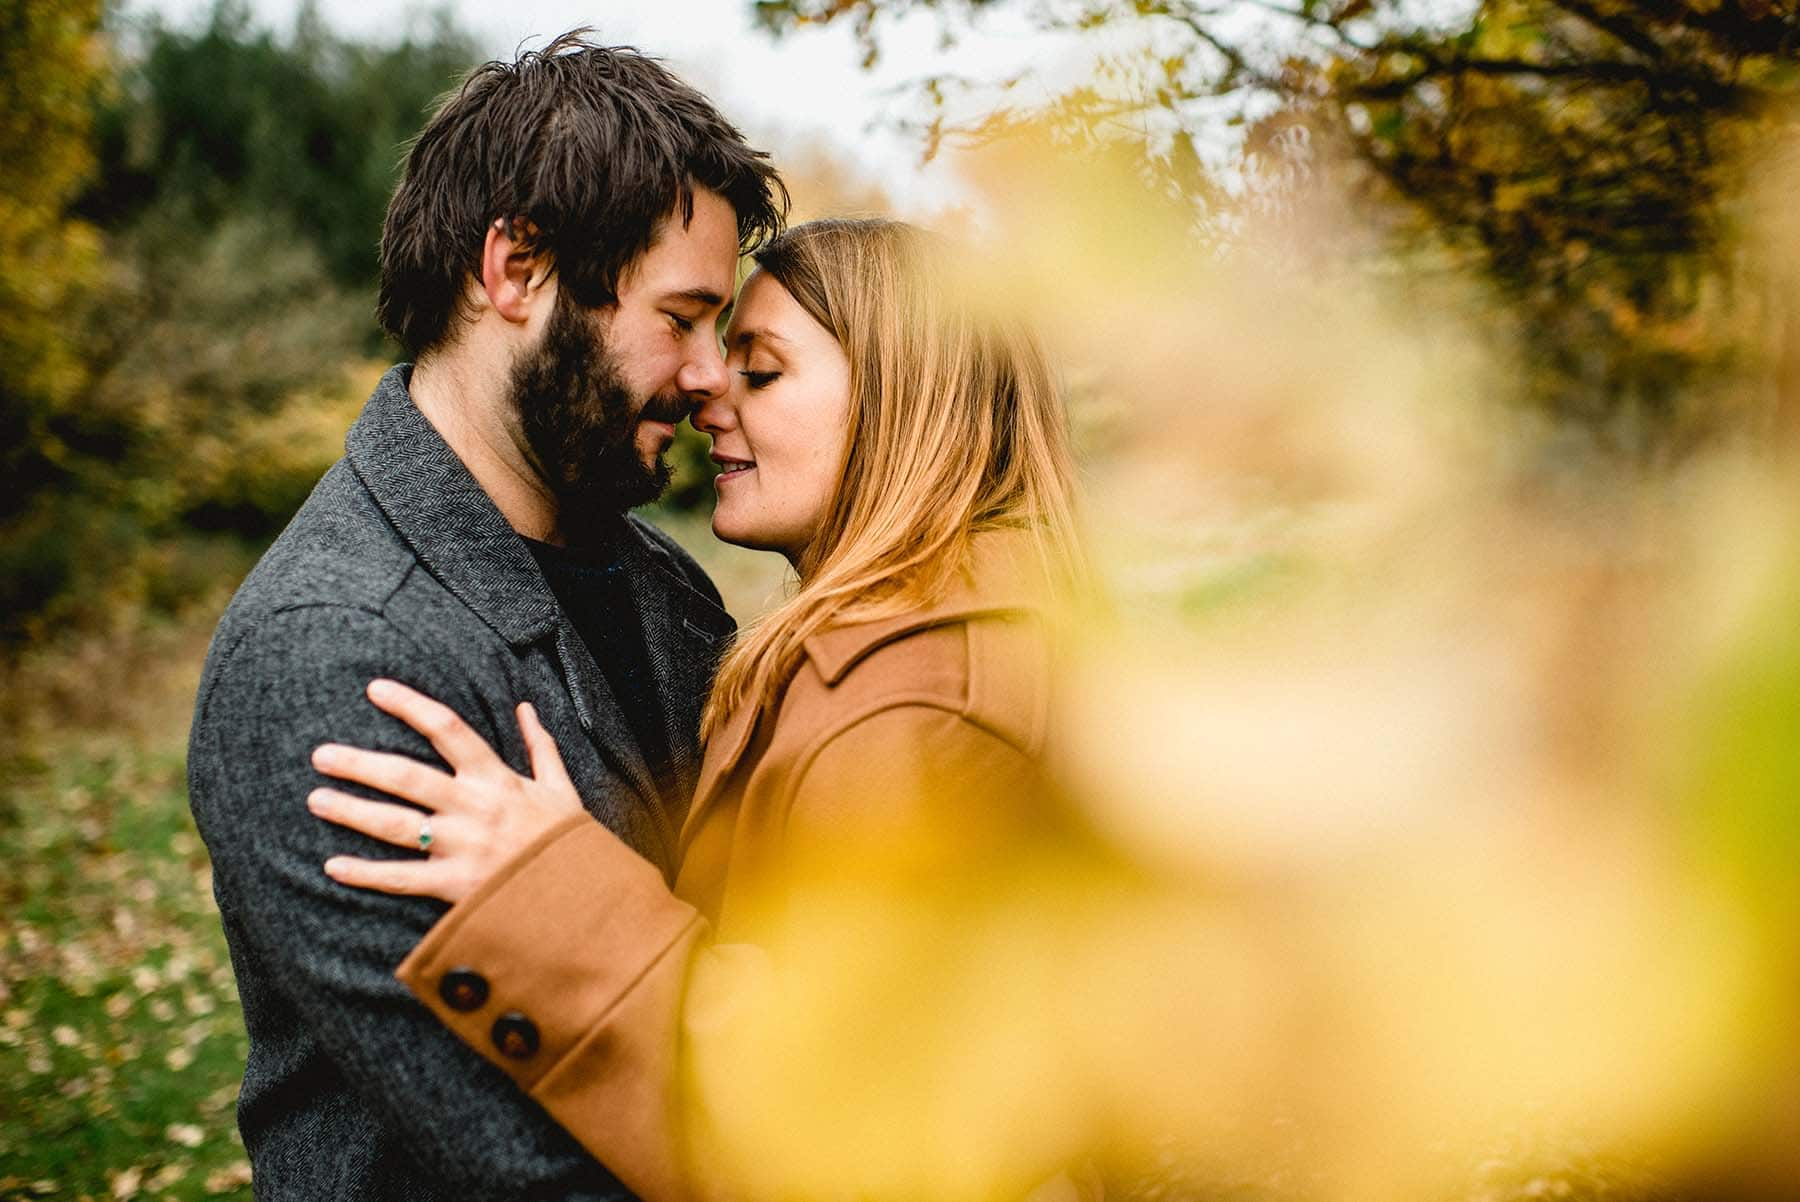 Sutton Park Engagement Shoot with Jenna and Ben